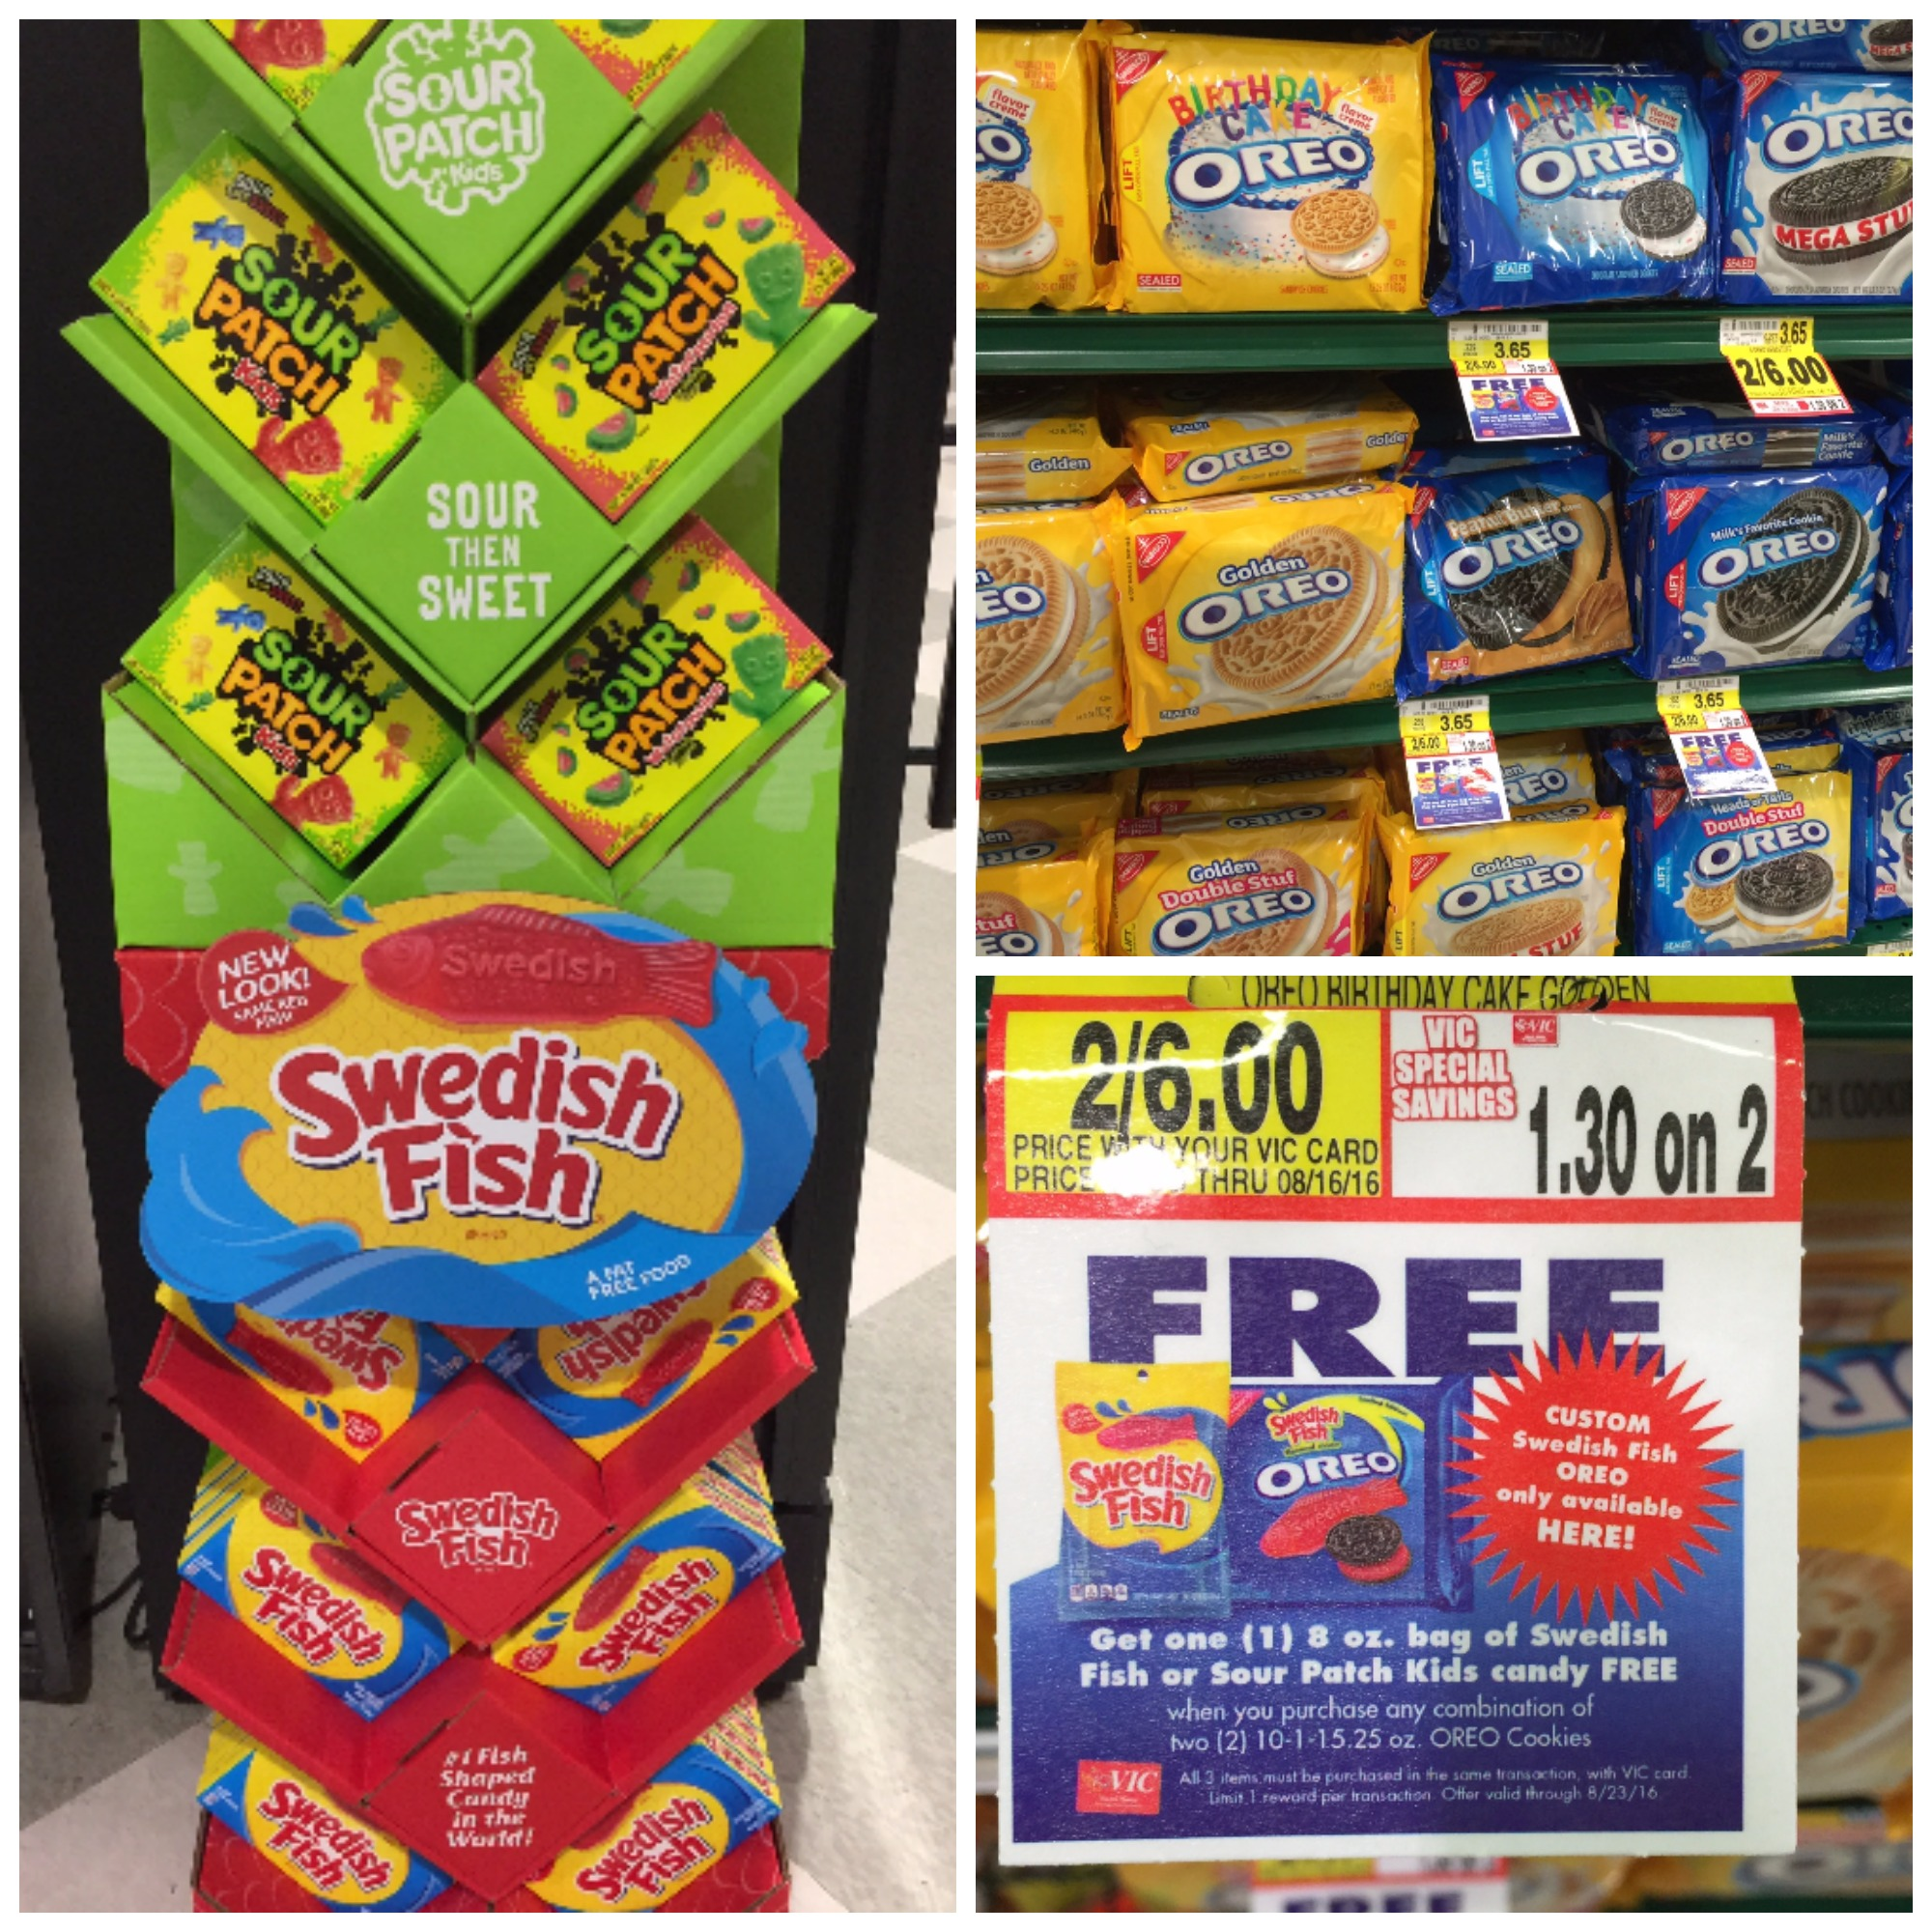 Oreo promo buy 2 get free candy the harris teeter deals for Swedish fish oreos where to buy